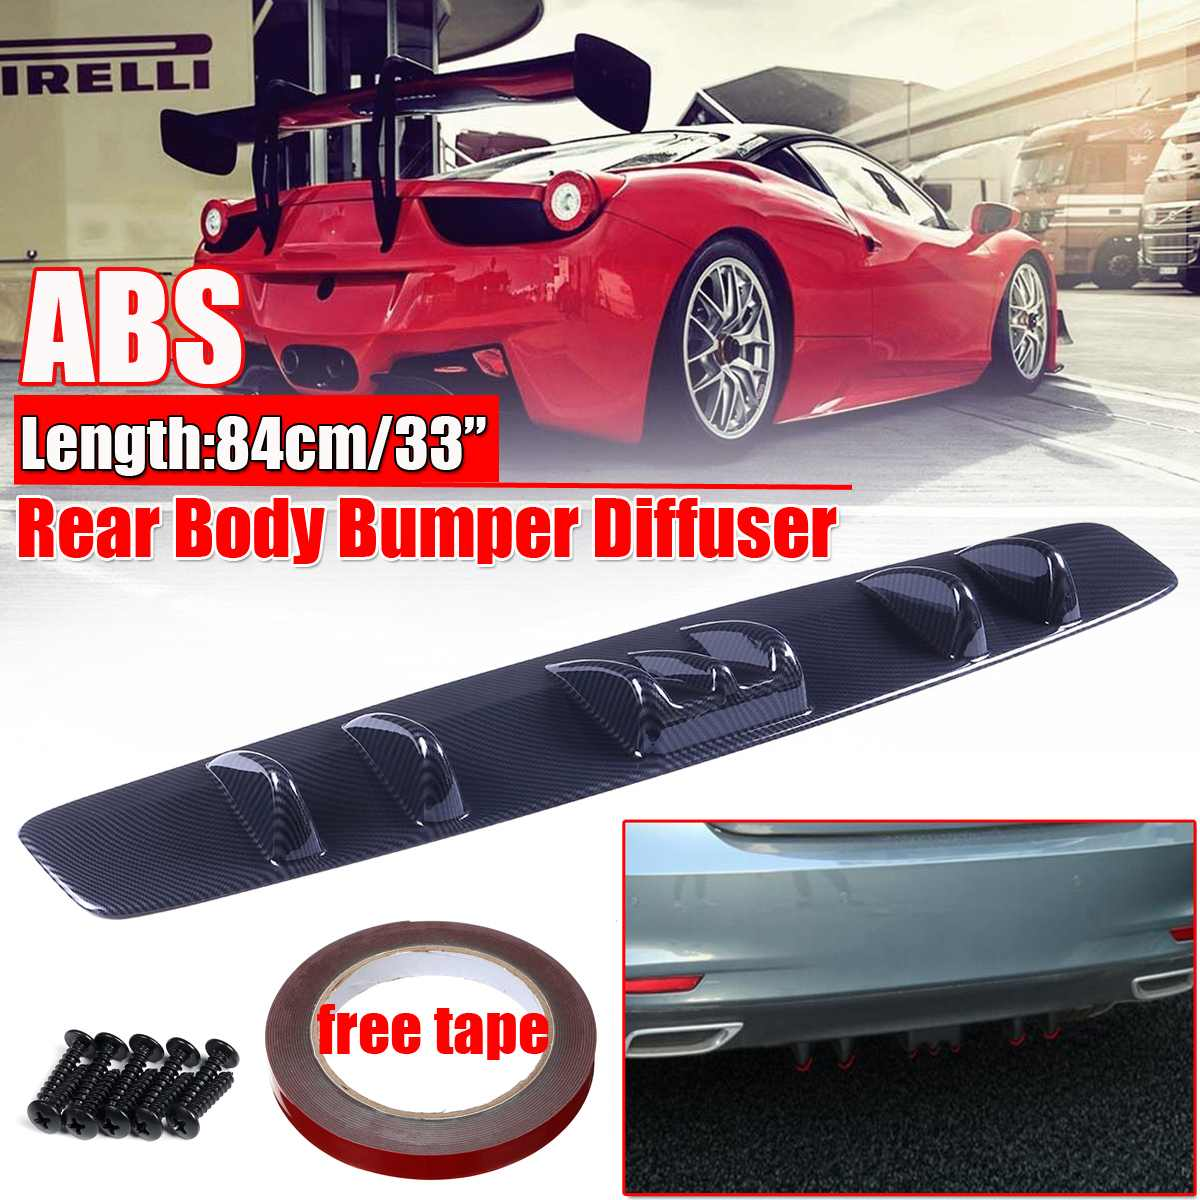 Car Rear Bumper Lip Diffuser 6 Fin Shark Fin Style For BMW Mercedes VW Audi Ford